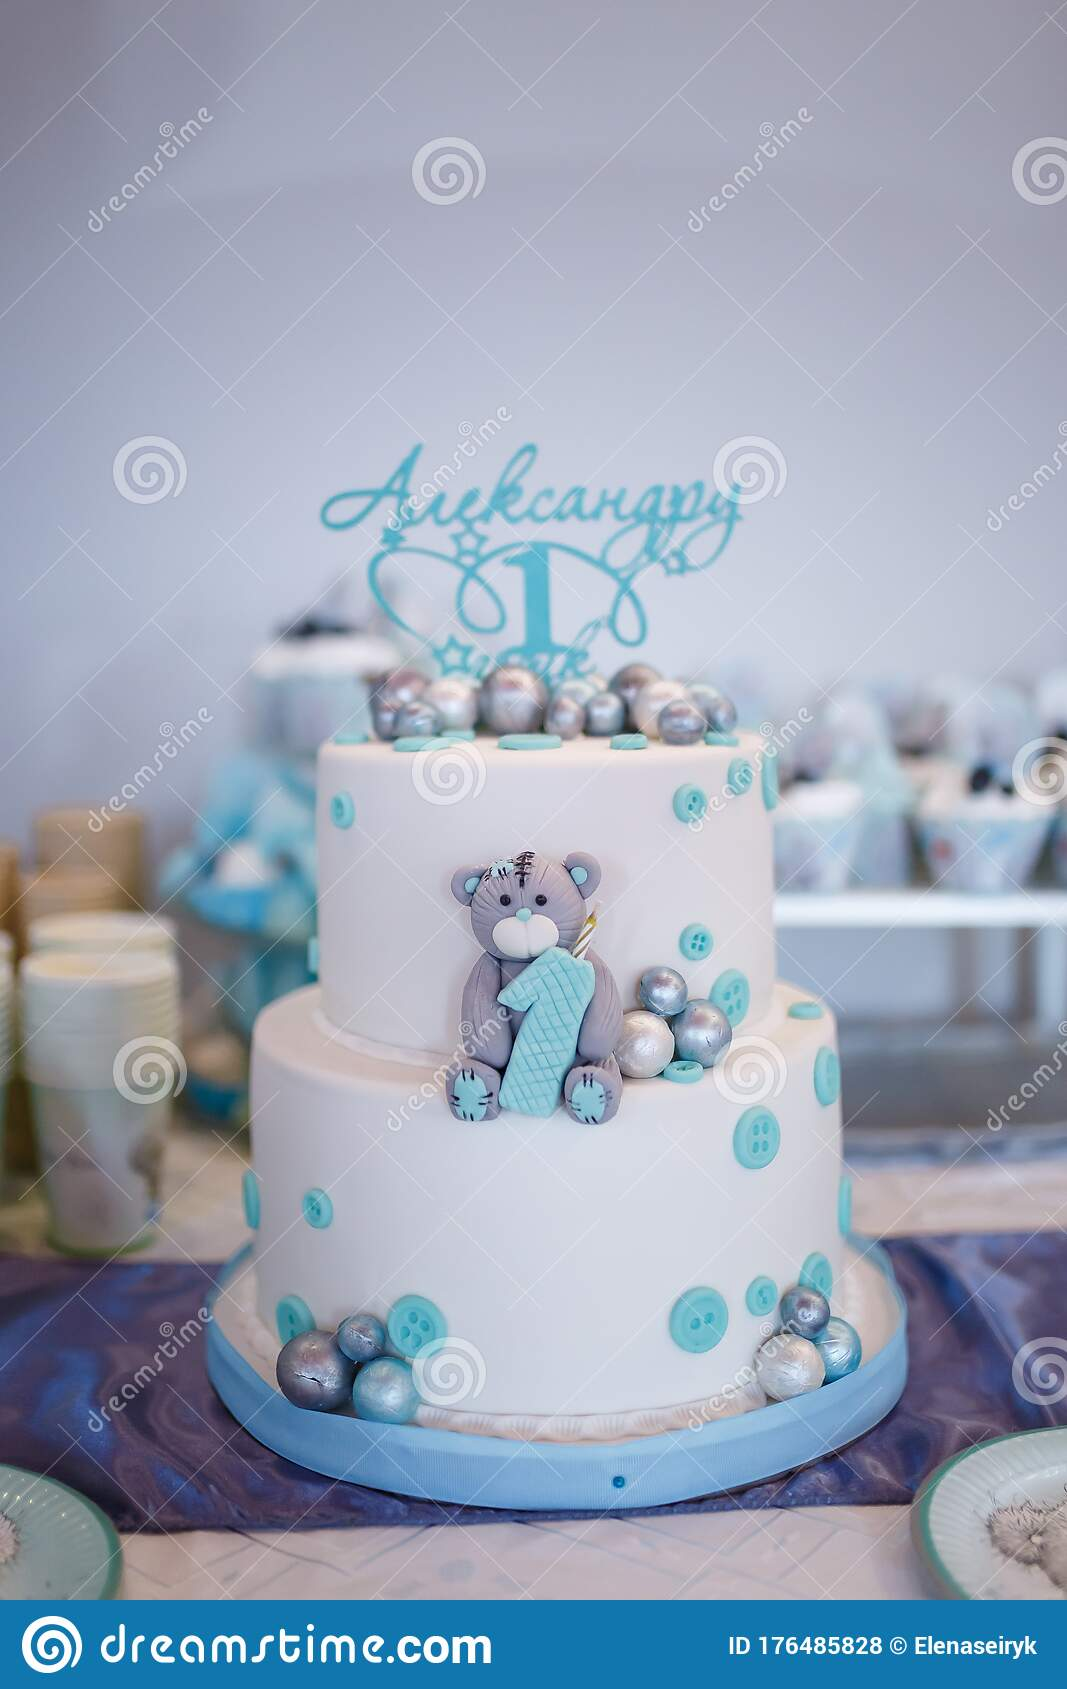 Birthday Cake For One Year Old Boy Teddy Bear Cartoon Character Shape And Blue Decorations Of Mastic Candy Bar Editorial Stock Photo Image Of Cute Background 176485828